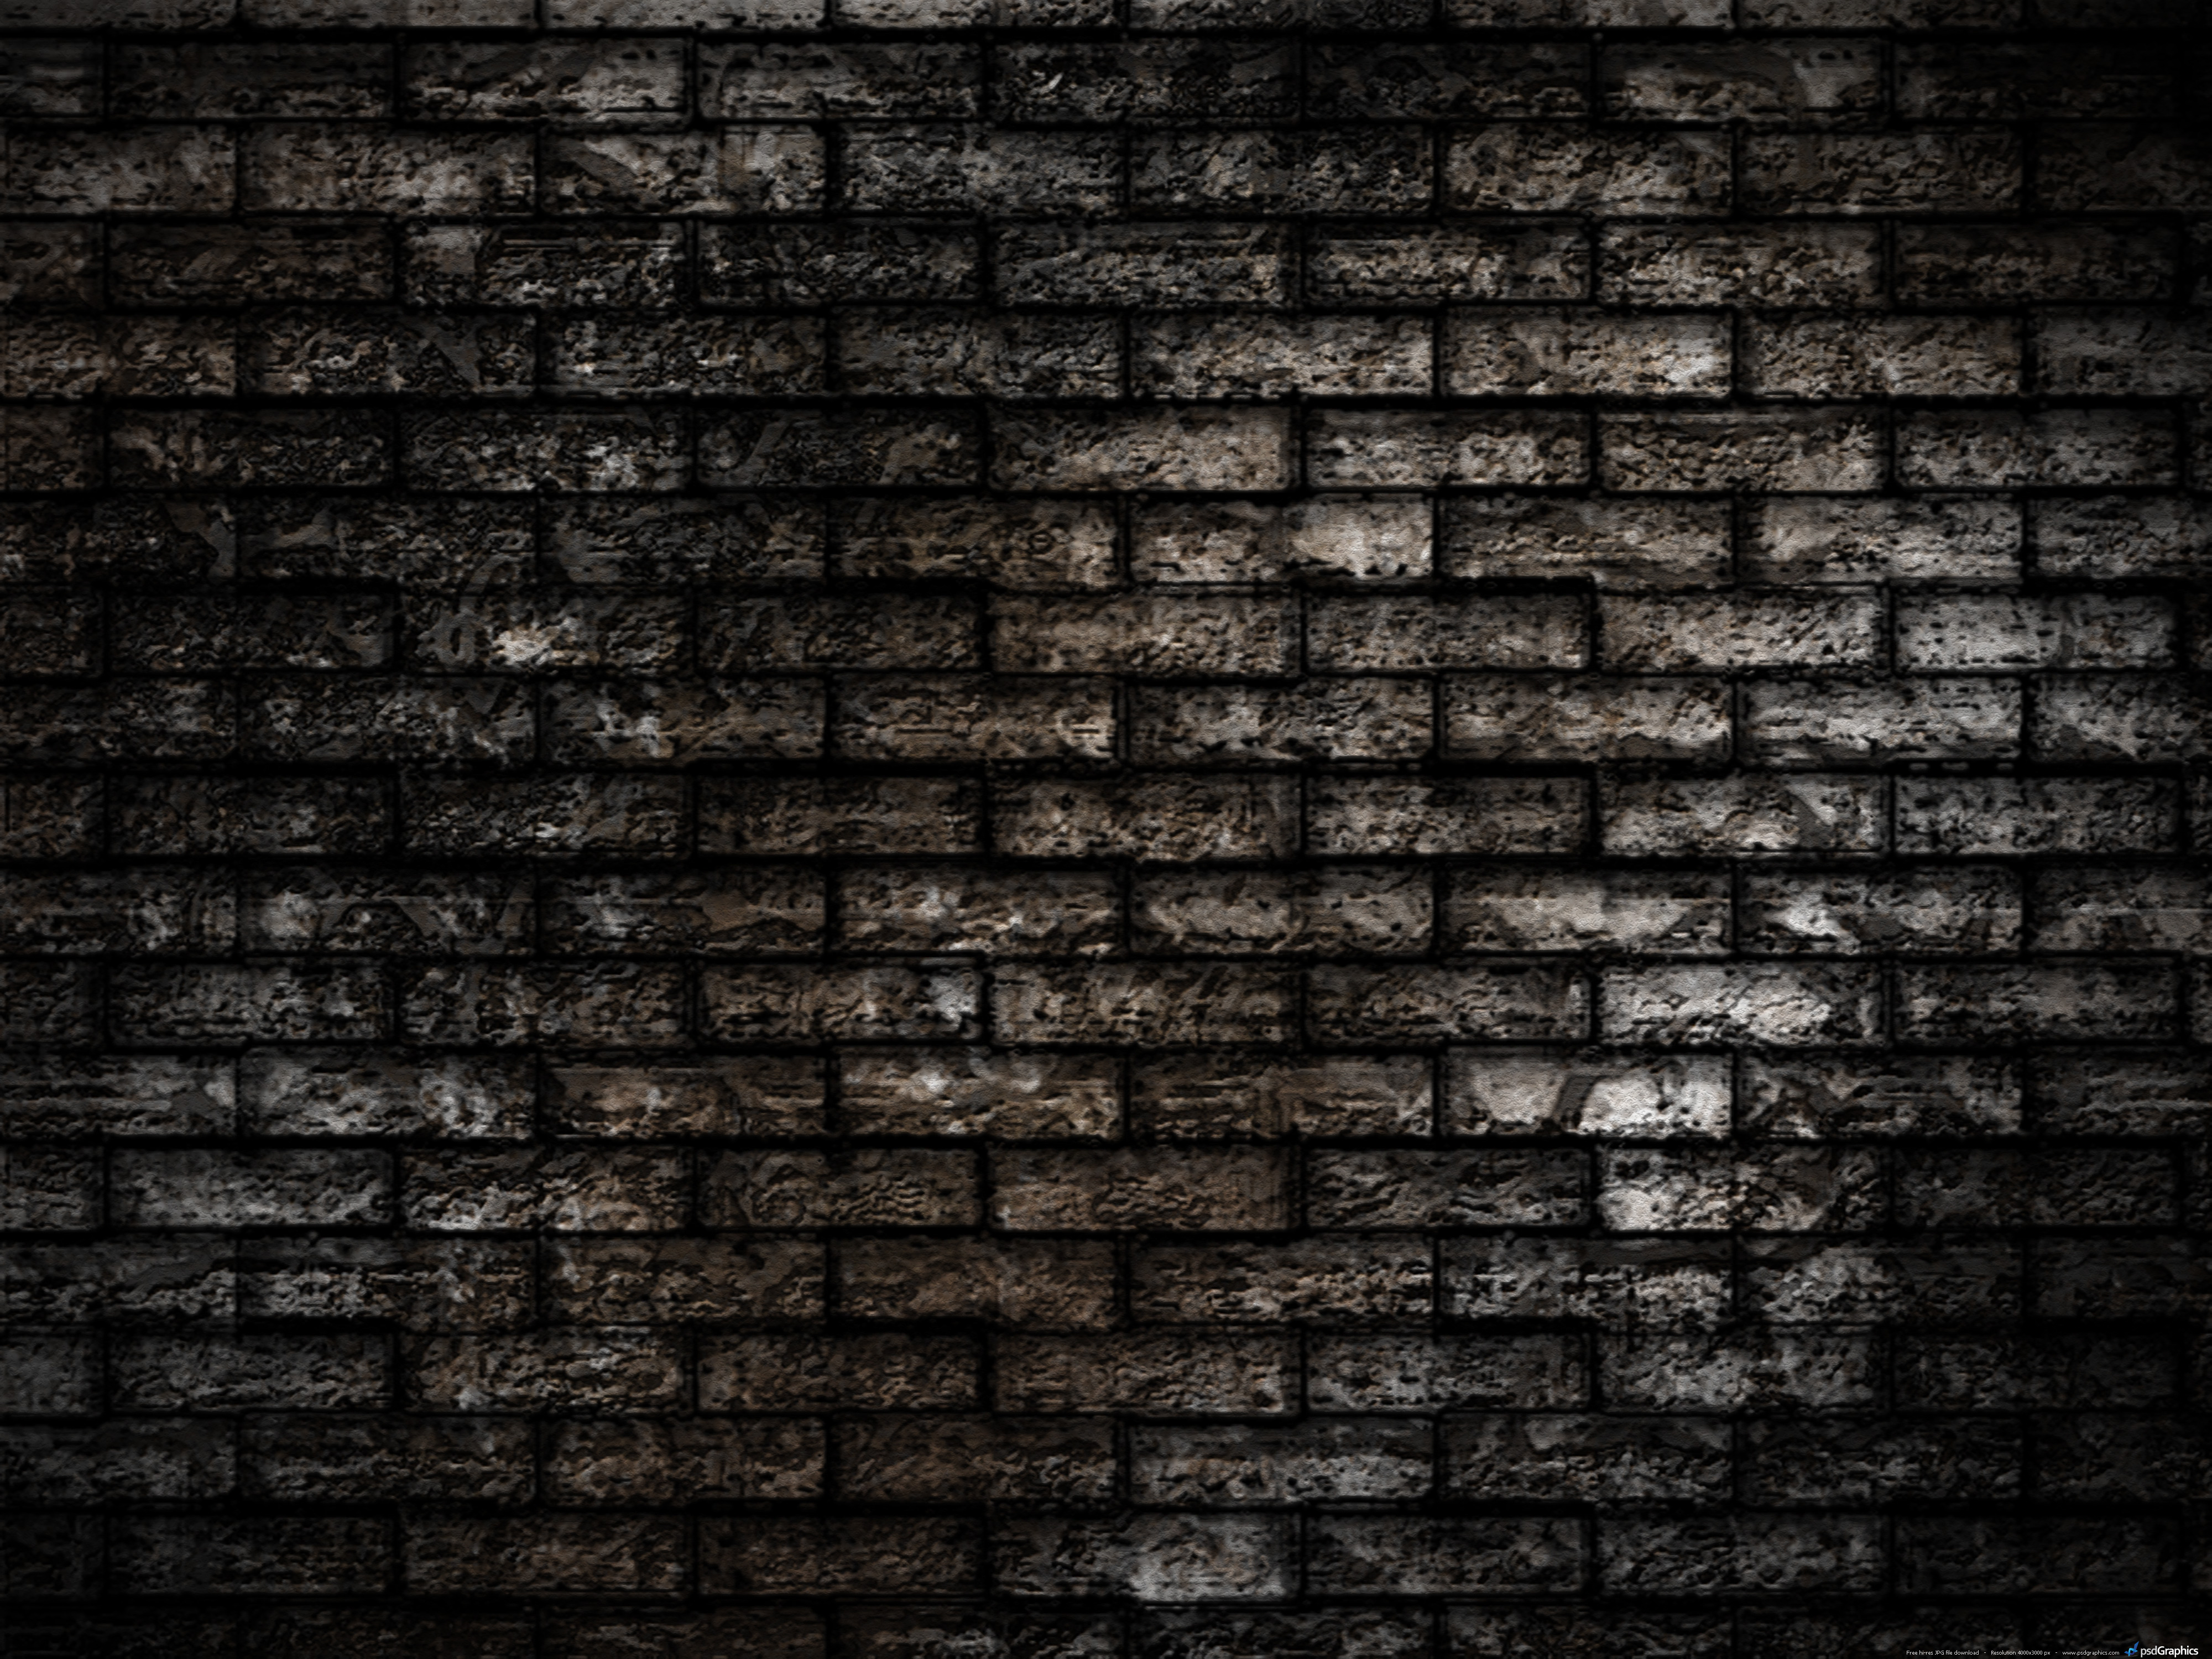 16 Brick Wall Texture Wallpaper PSD Images